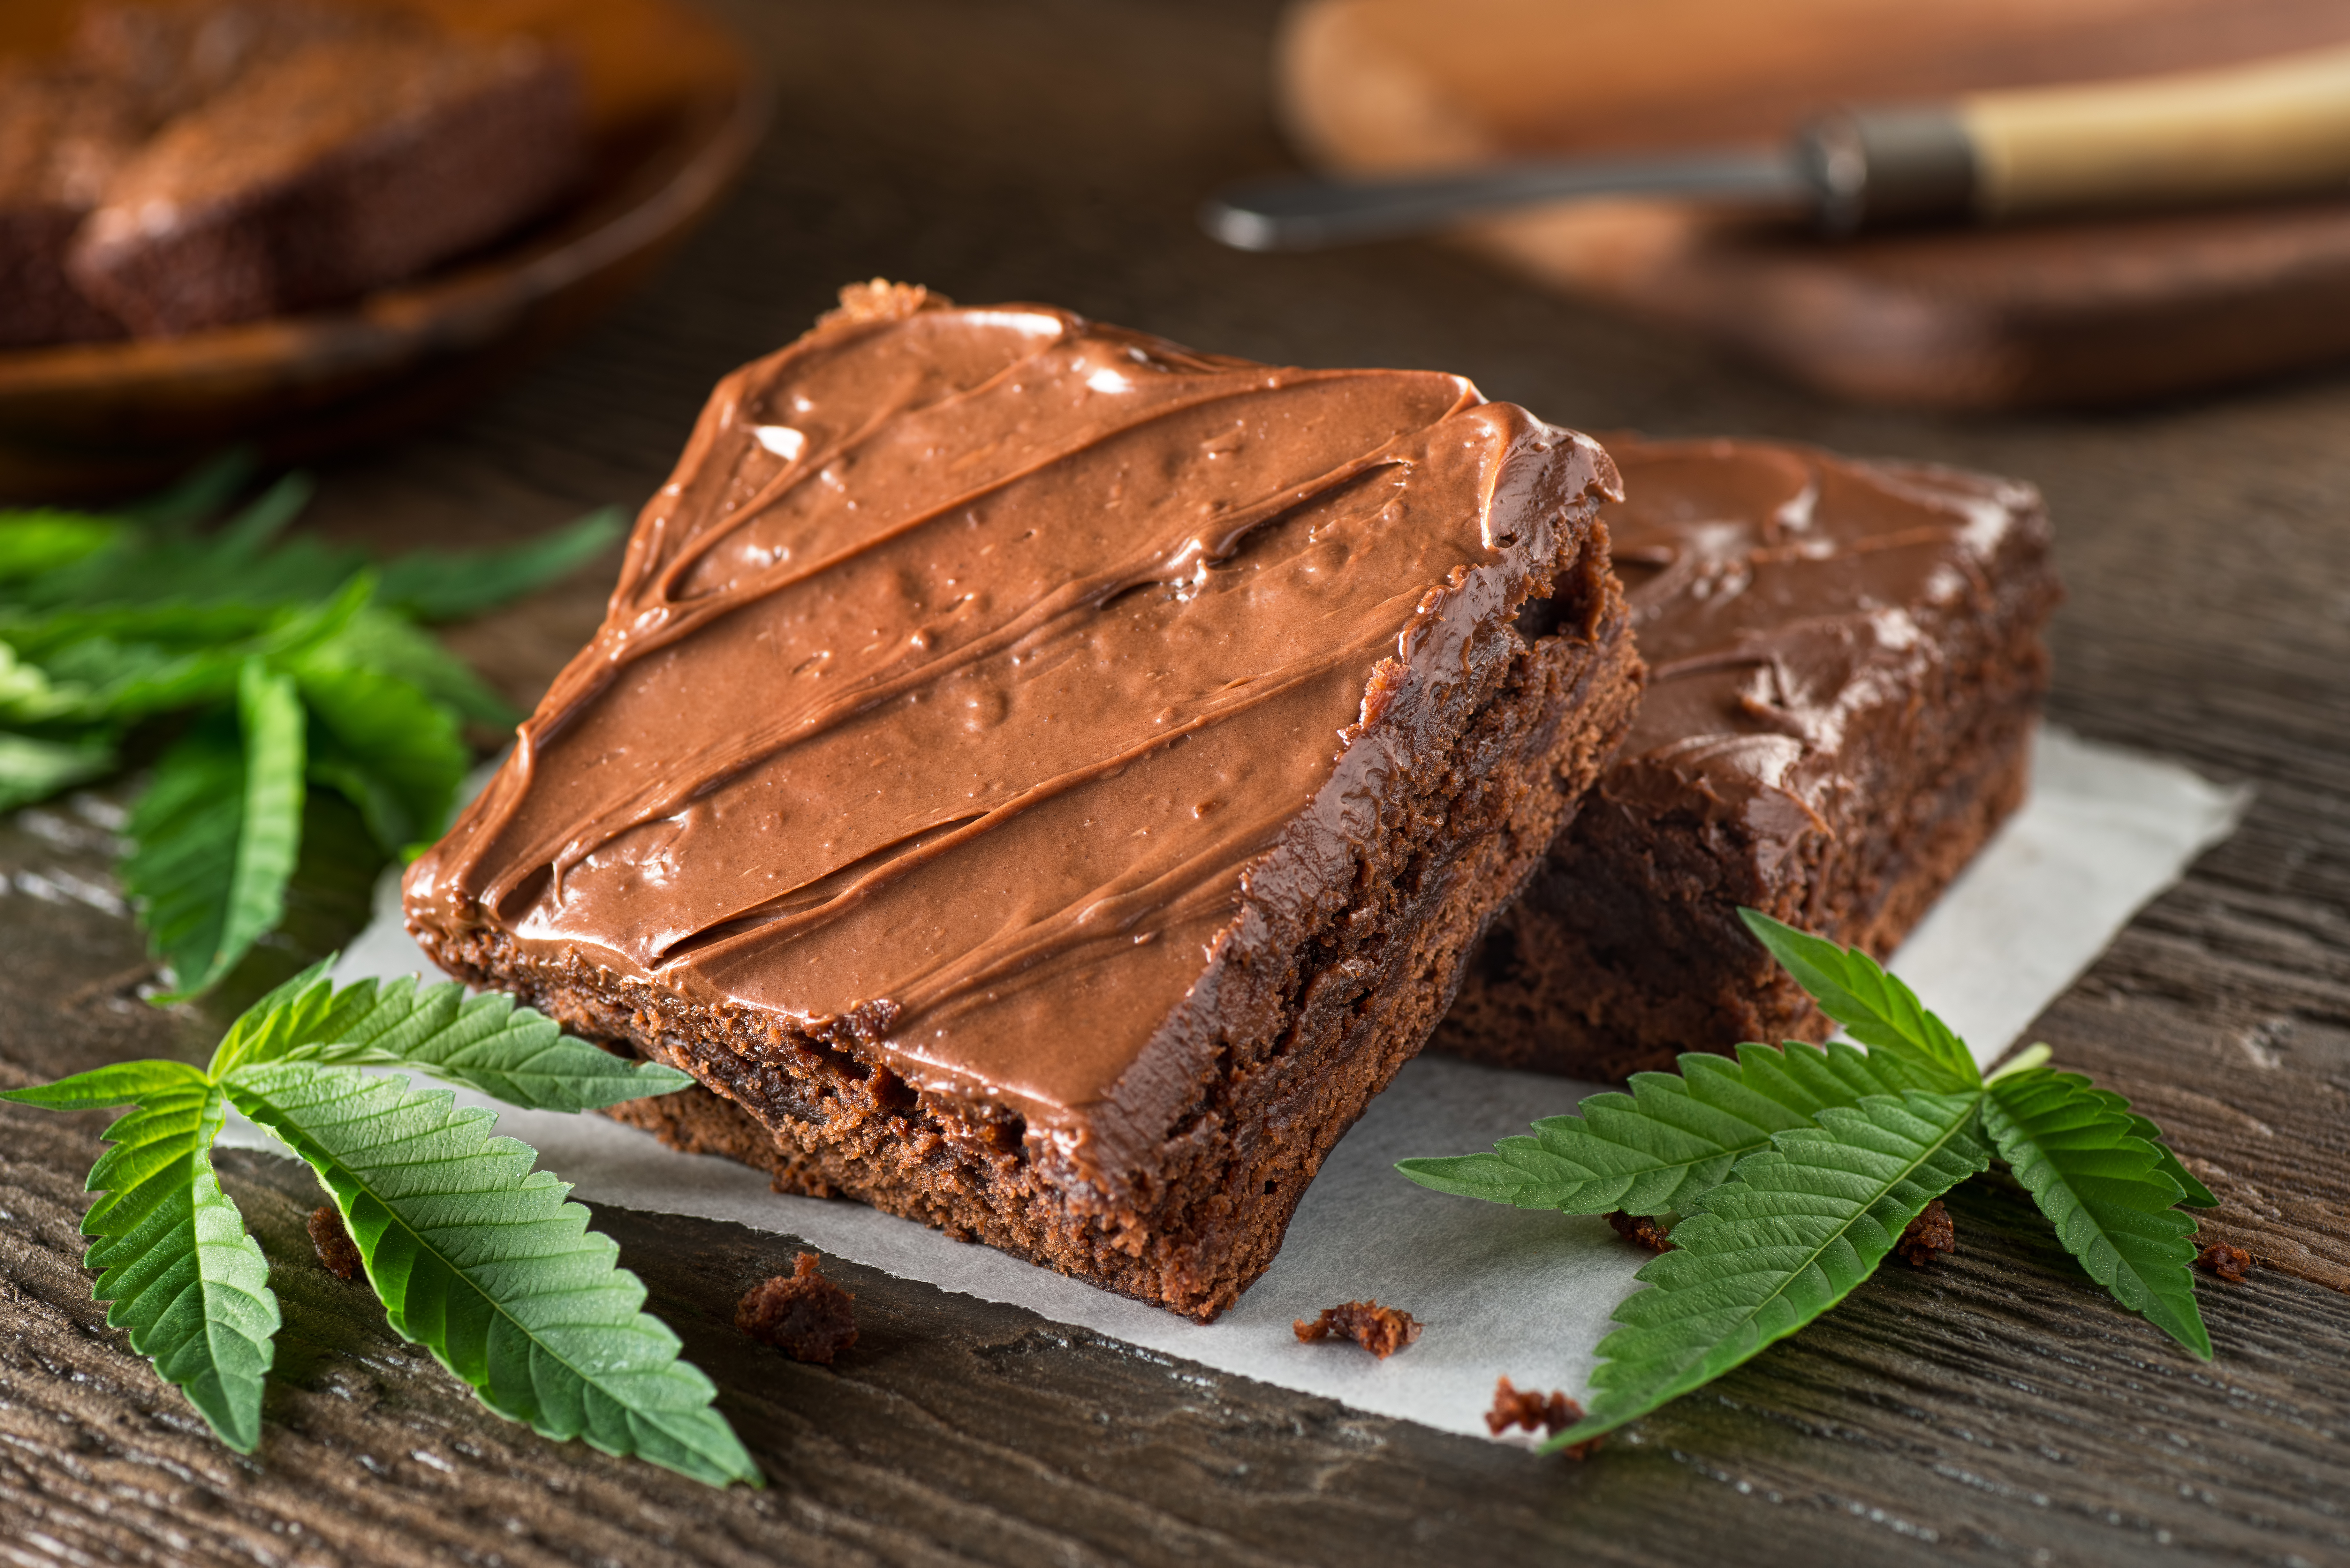 In states where marijuana is legal, pot comes in cookies, mints, gummies, protein bars — even pretzels. These commercial products are labeled with the amount of high-inducing THC. That helps medical marijuana patients get the desired dose and other consum